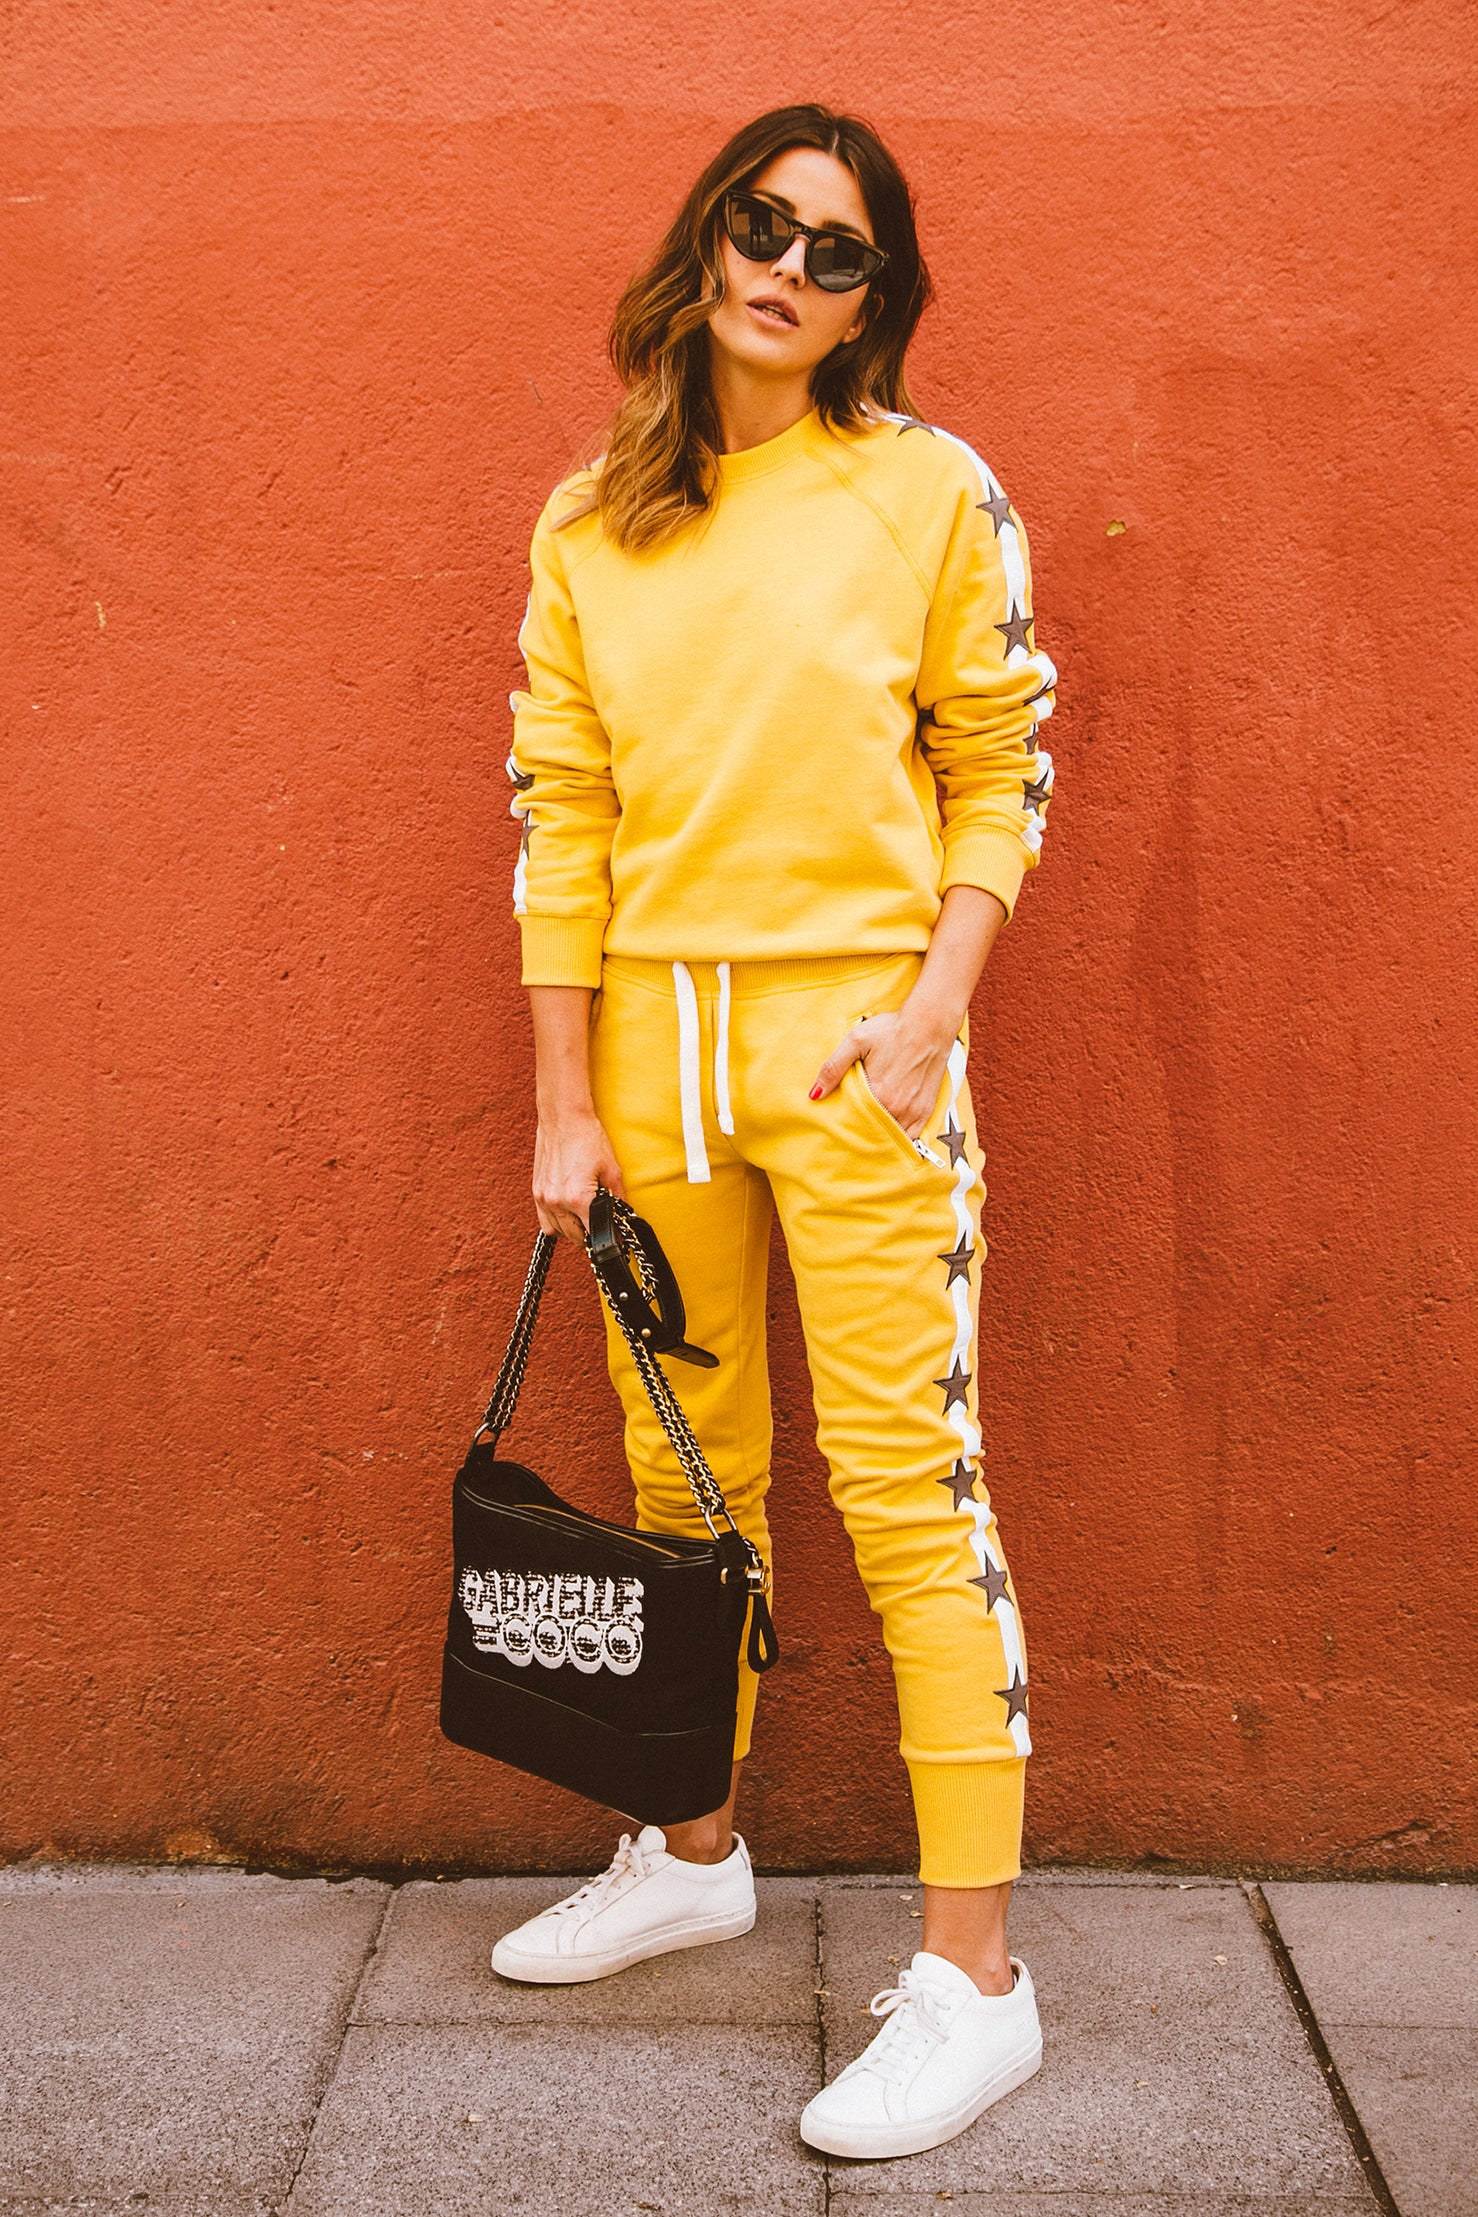 Track Star Sweatshirt - Vintage Yellow